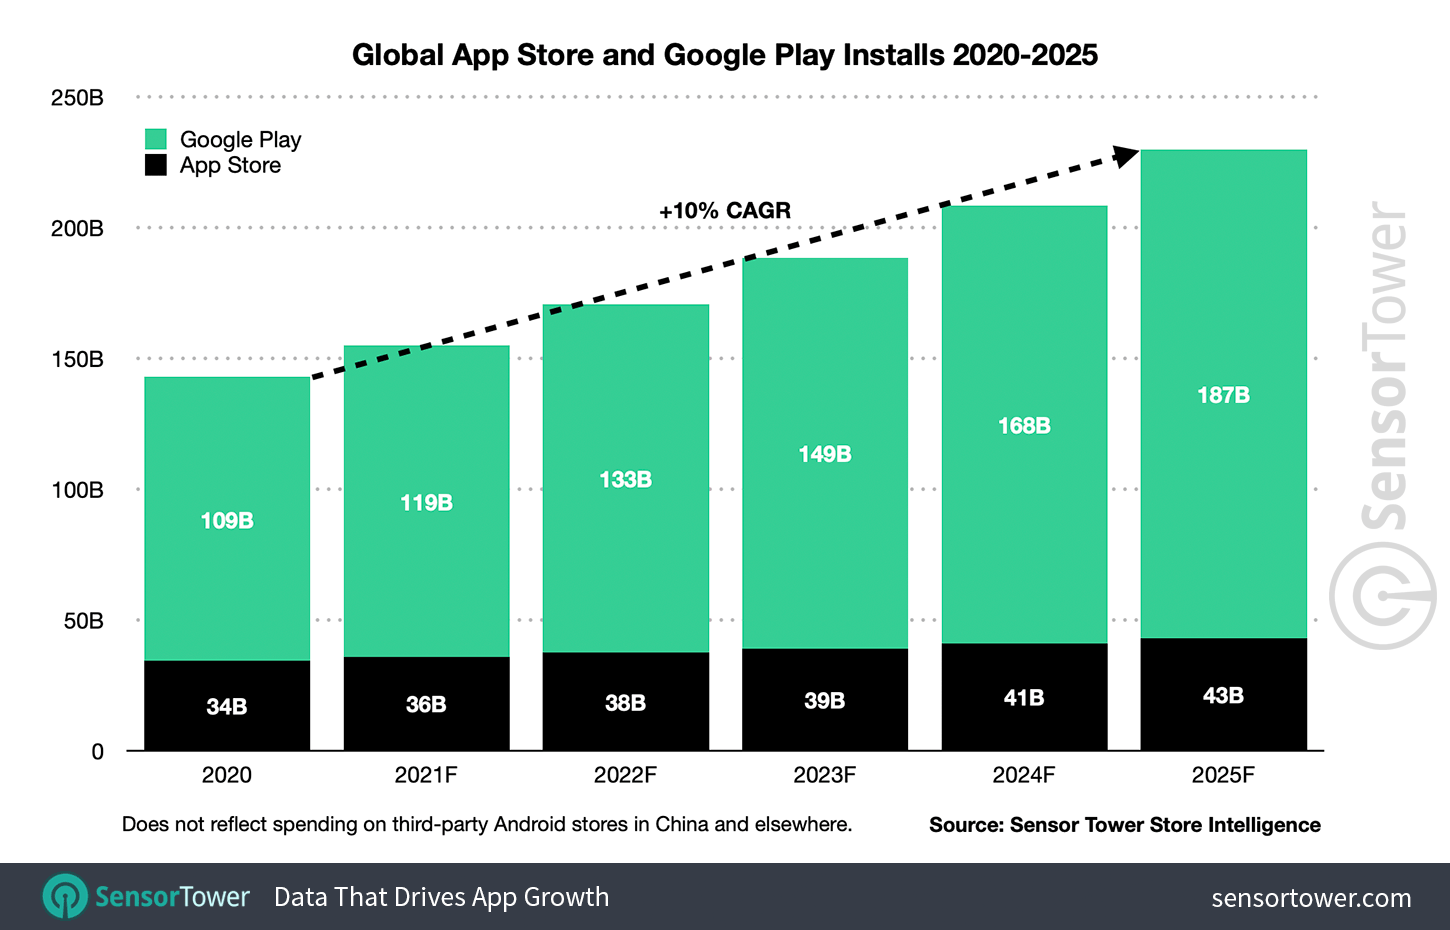 Worldwide installs across the App Store and Google Play will reach 230 billion in 2025